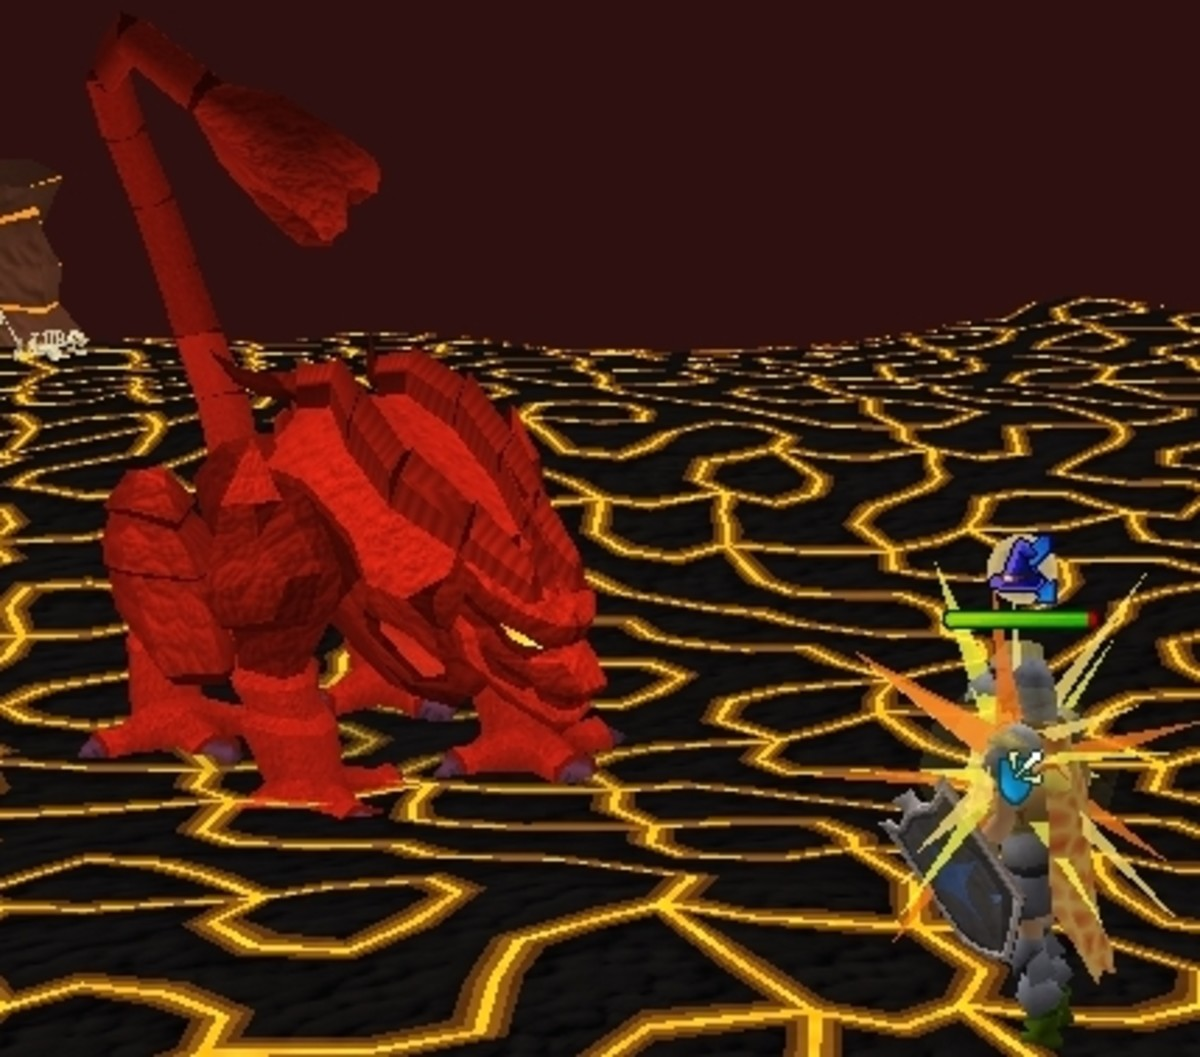 Runescape Fight Cave: How To Kill Jad The Easy Way and Win the Fire Cape | HubPages